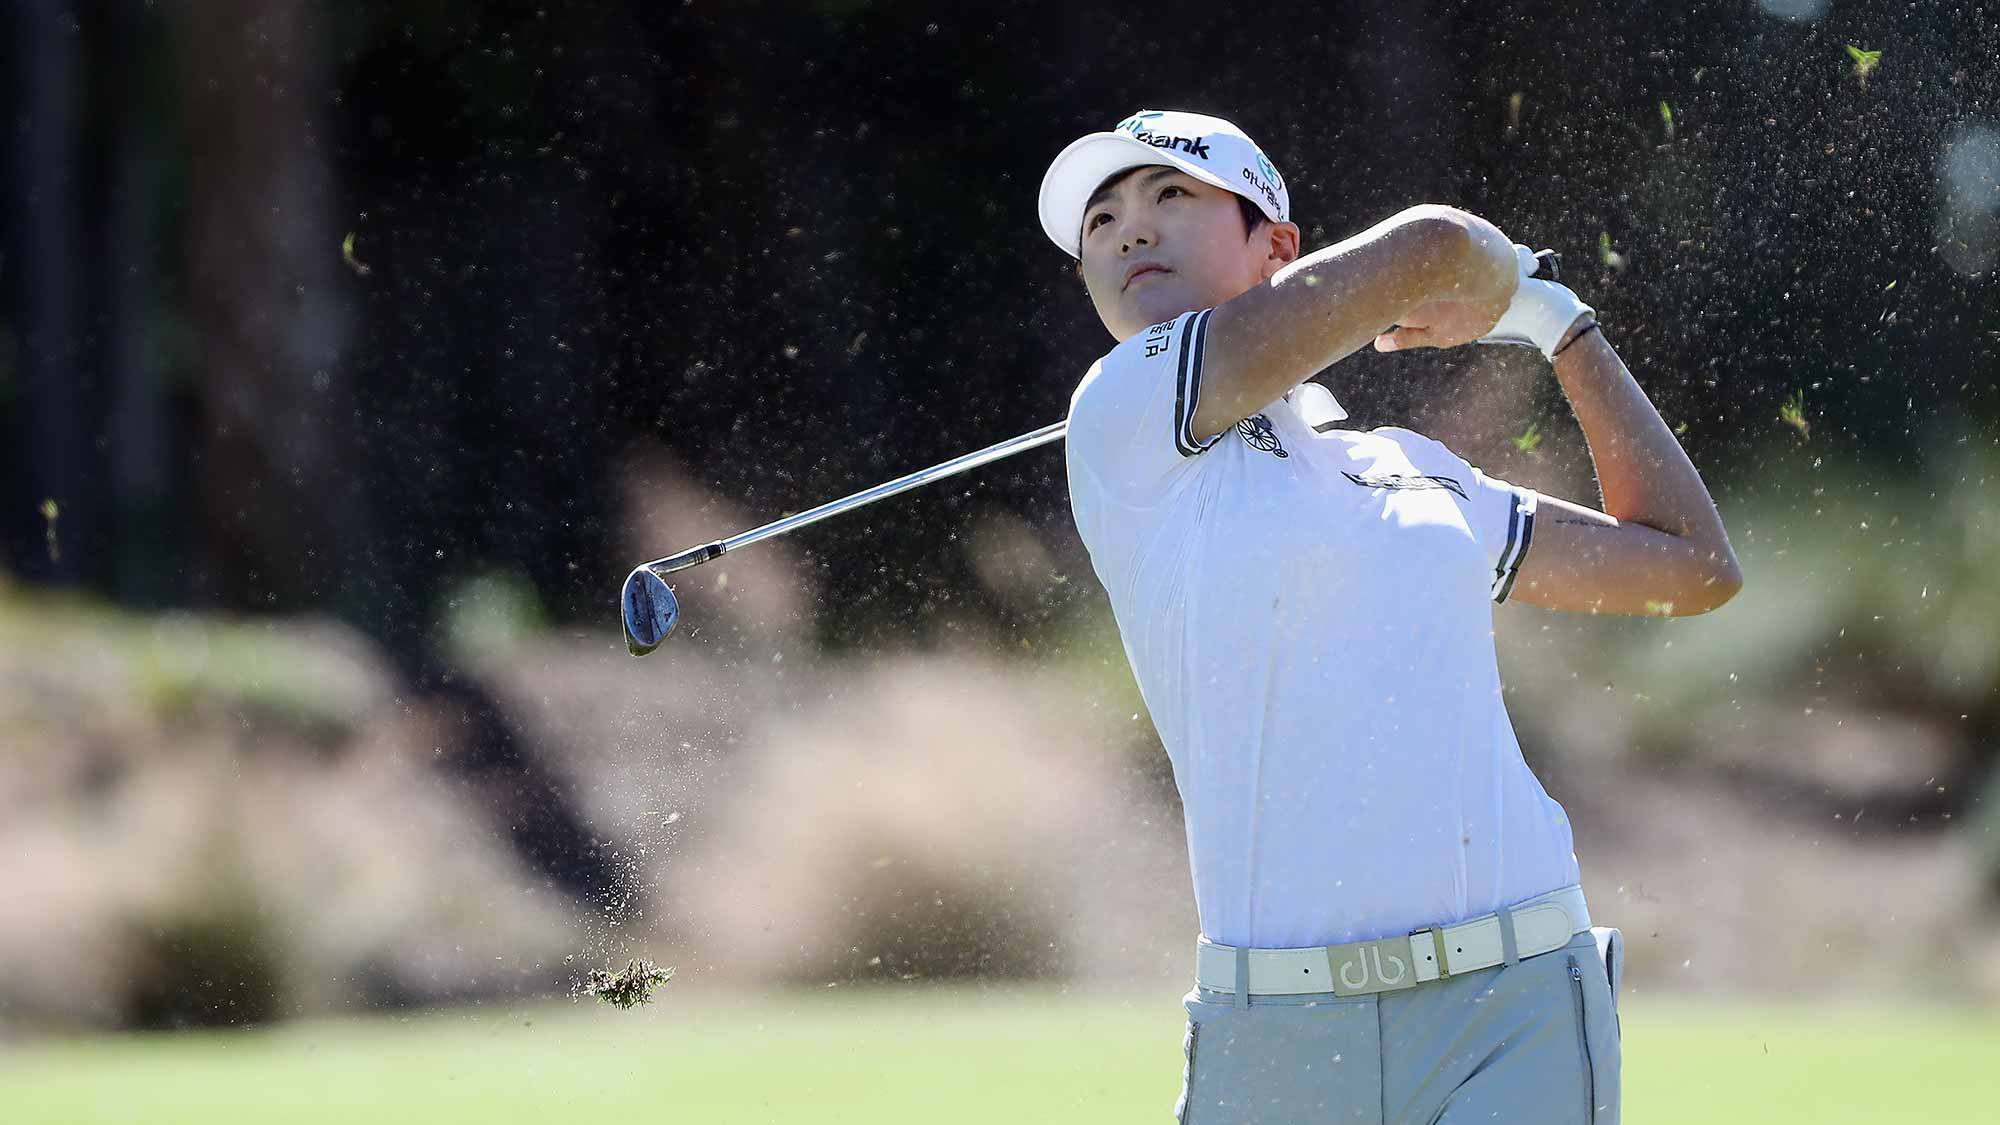 Sung Hyun Park of Korea plays a shot on the second hole during the final round of the CME Group Tour Championship